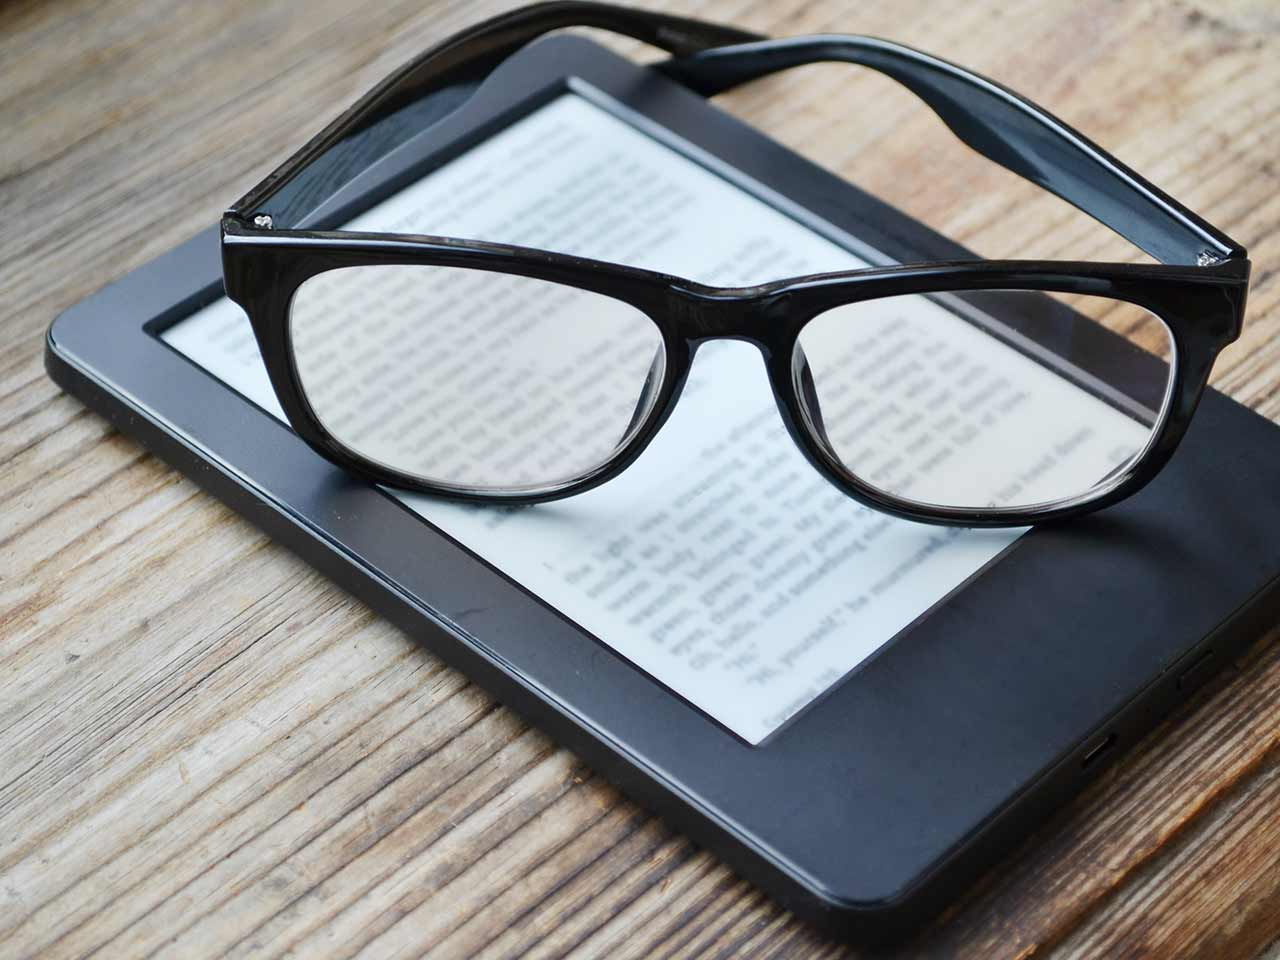 Kindle and a pair of glasses